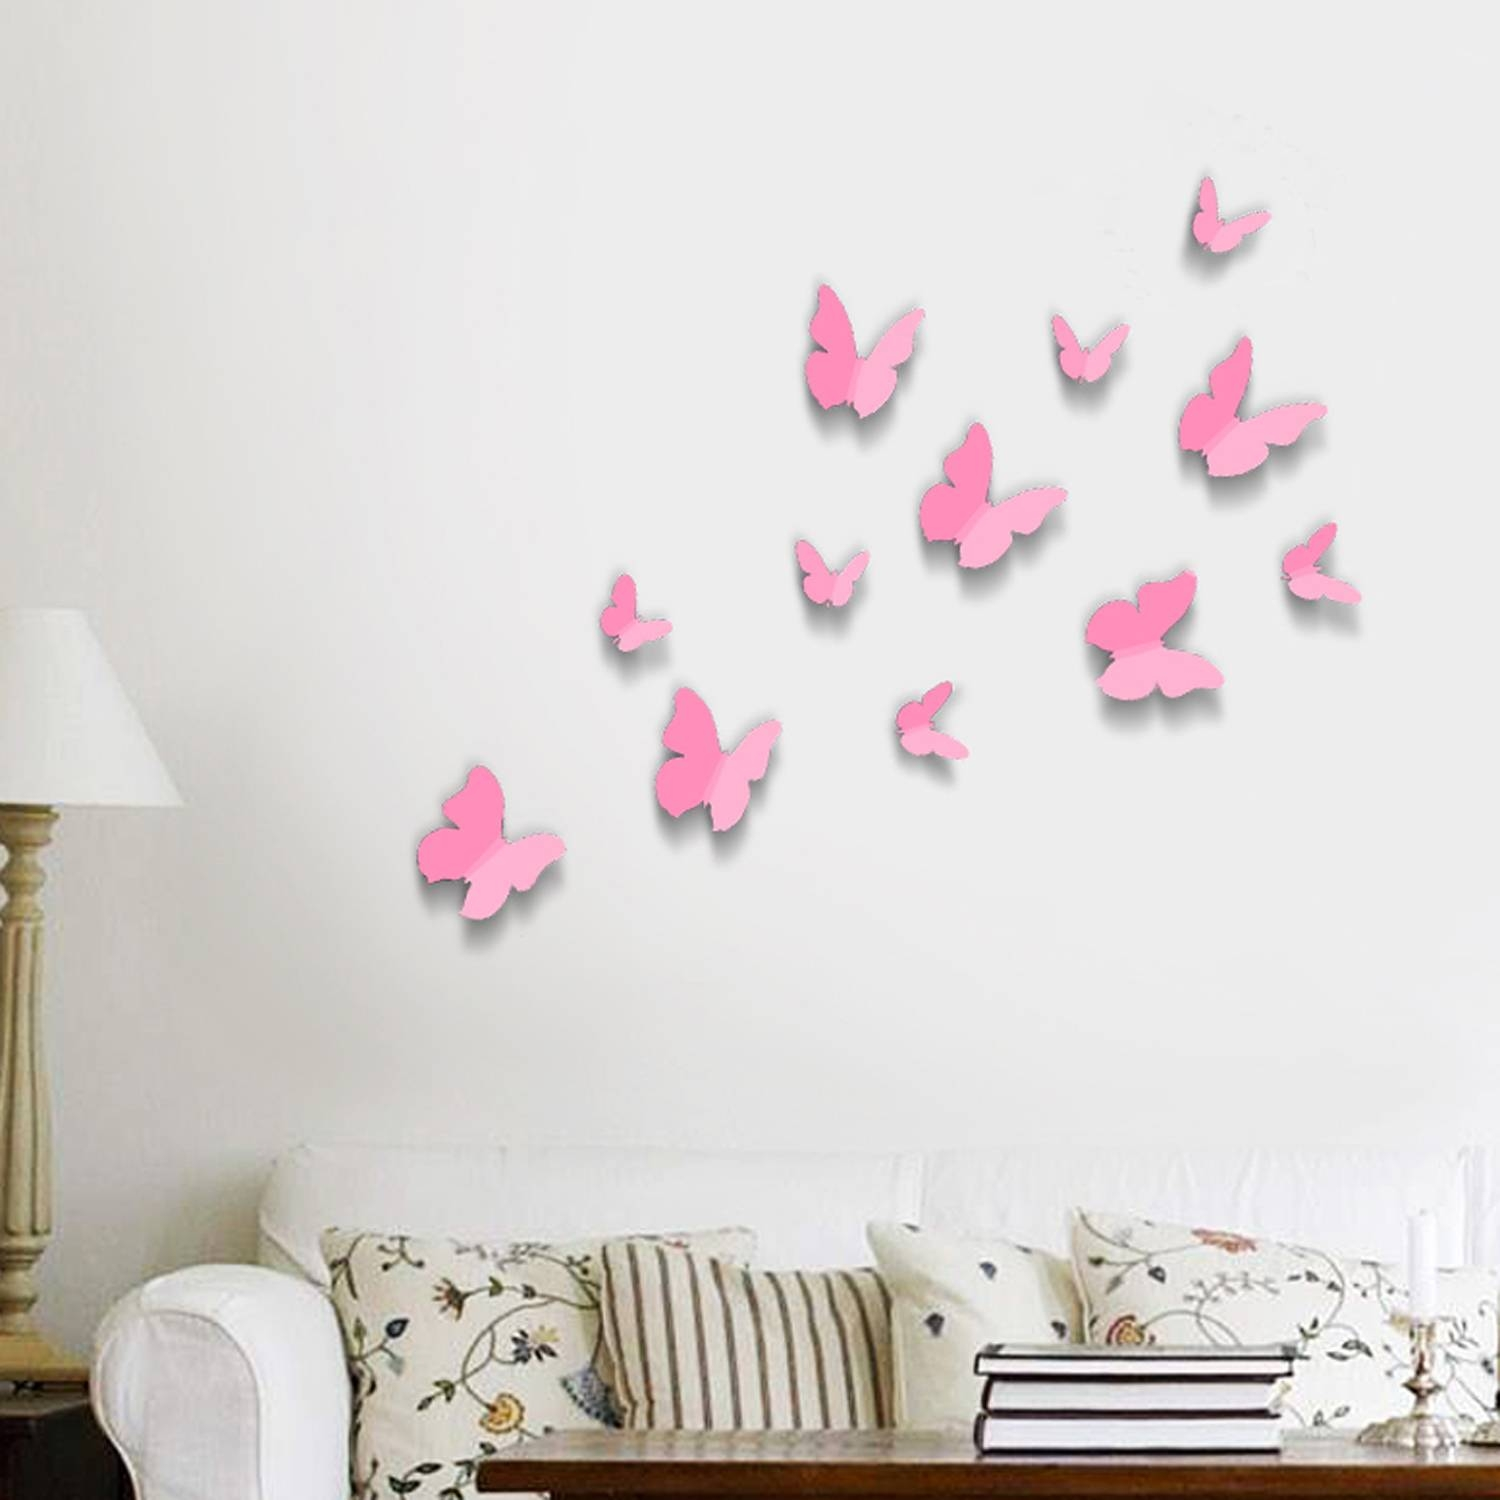 Pink 3d Butterflies Wall Art Stickers For Latest Pink Butterfly Wall Art (View 2 of 20)